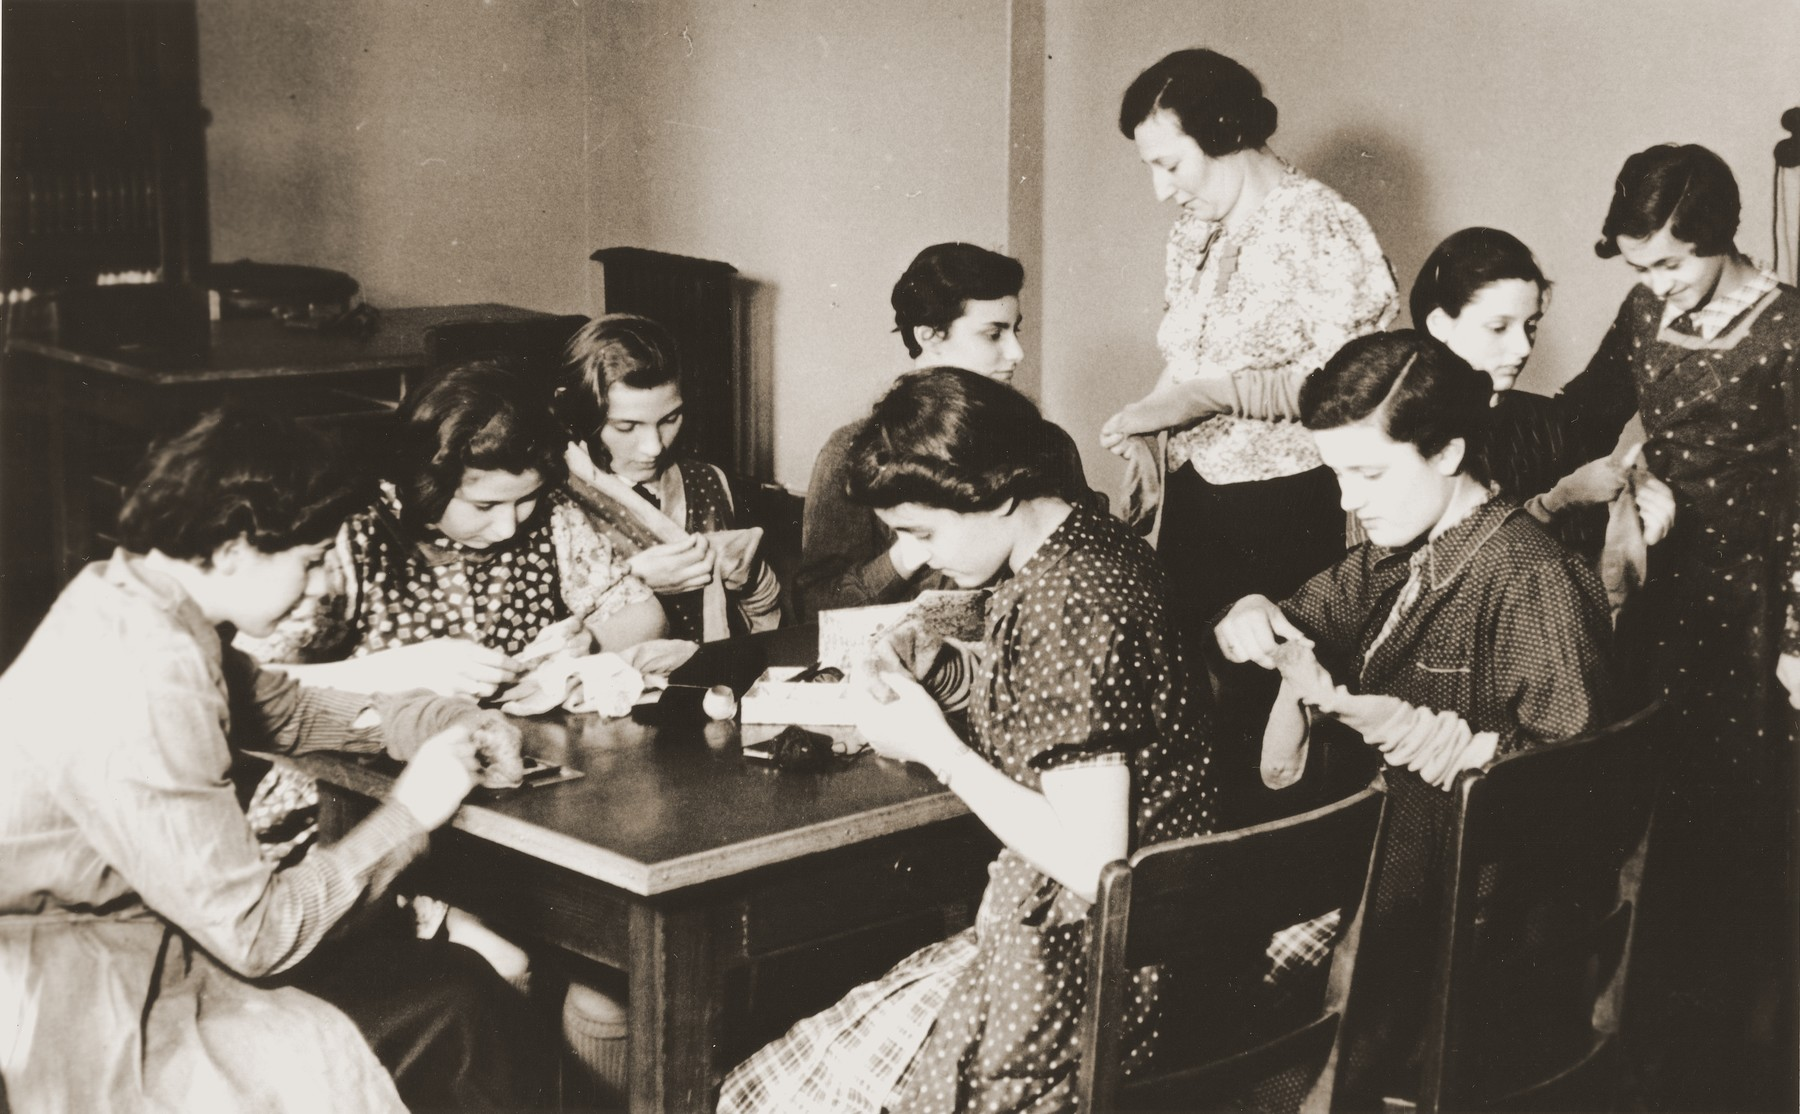 Teenage girls darn socks for the boys of the Baruch Auerbach Jewish orphanage in Berlin.  Margot Peretz is pictured in the front, right.